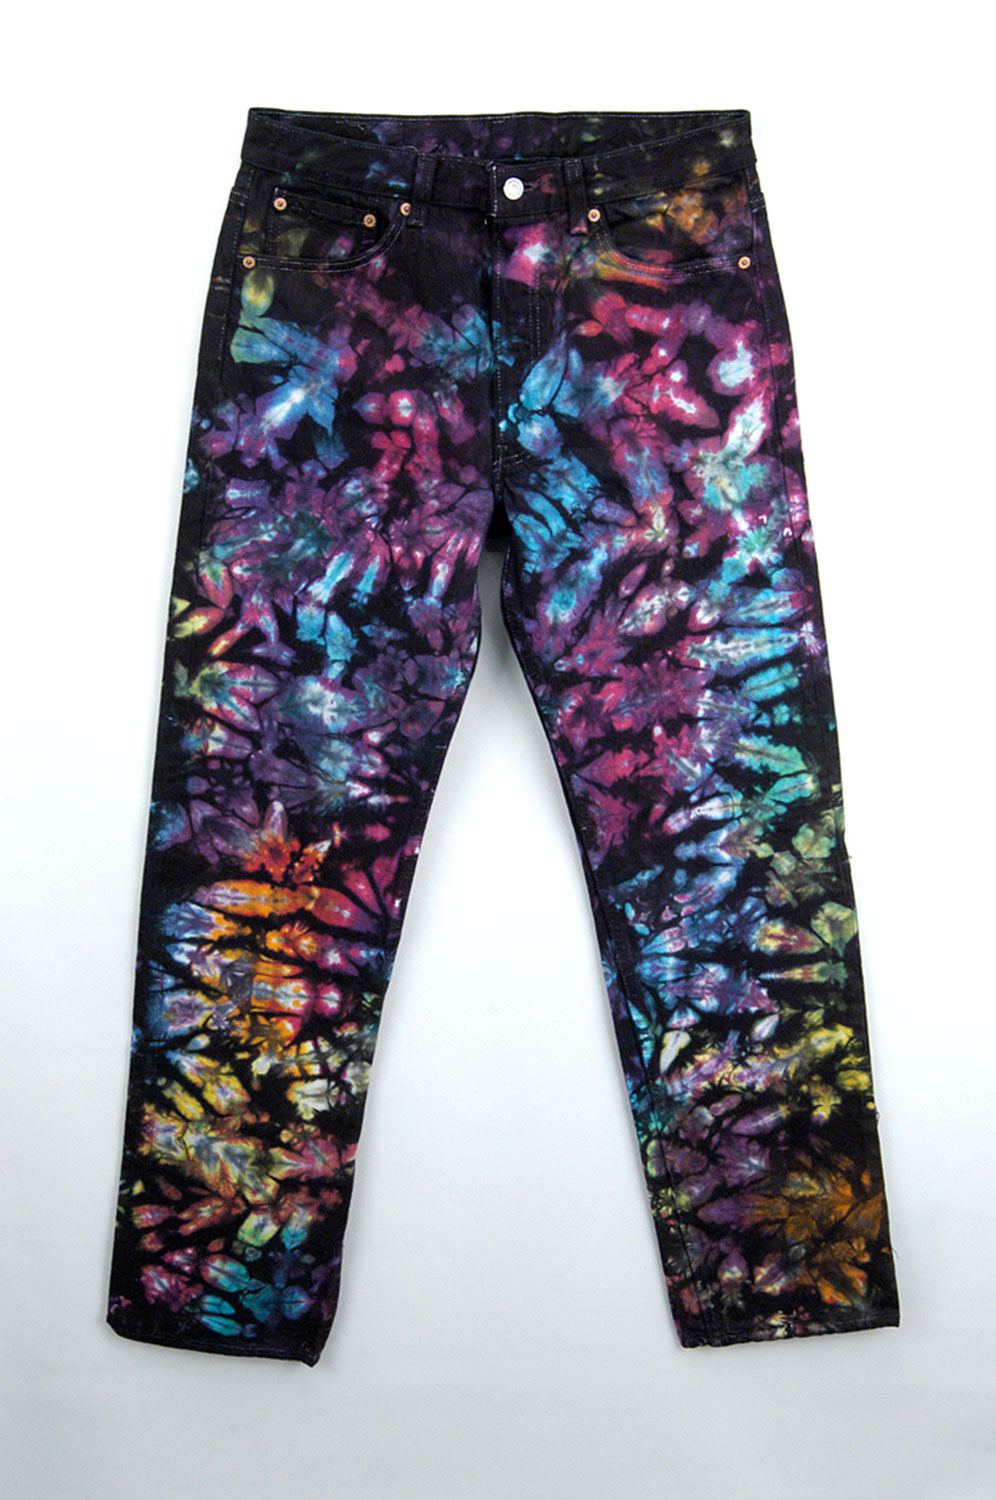 Tie dyed jeans